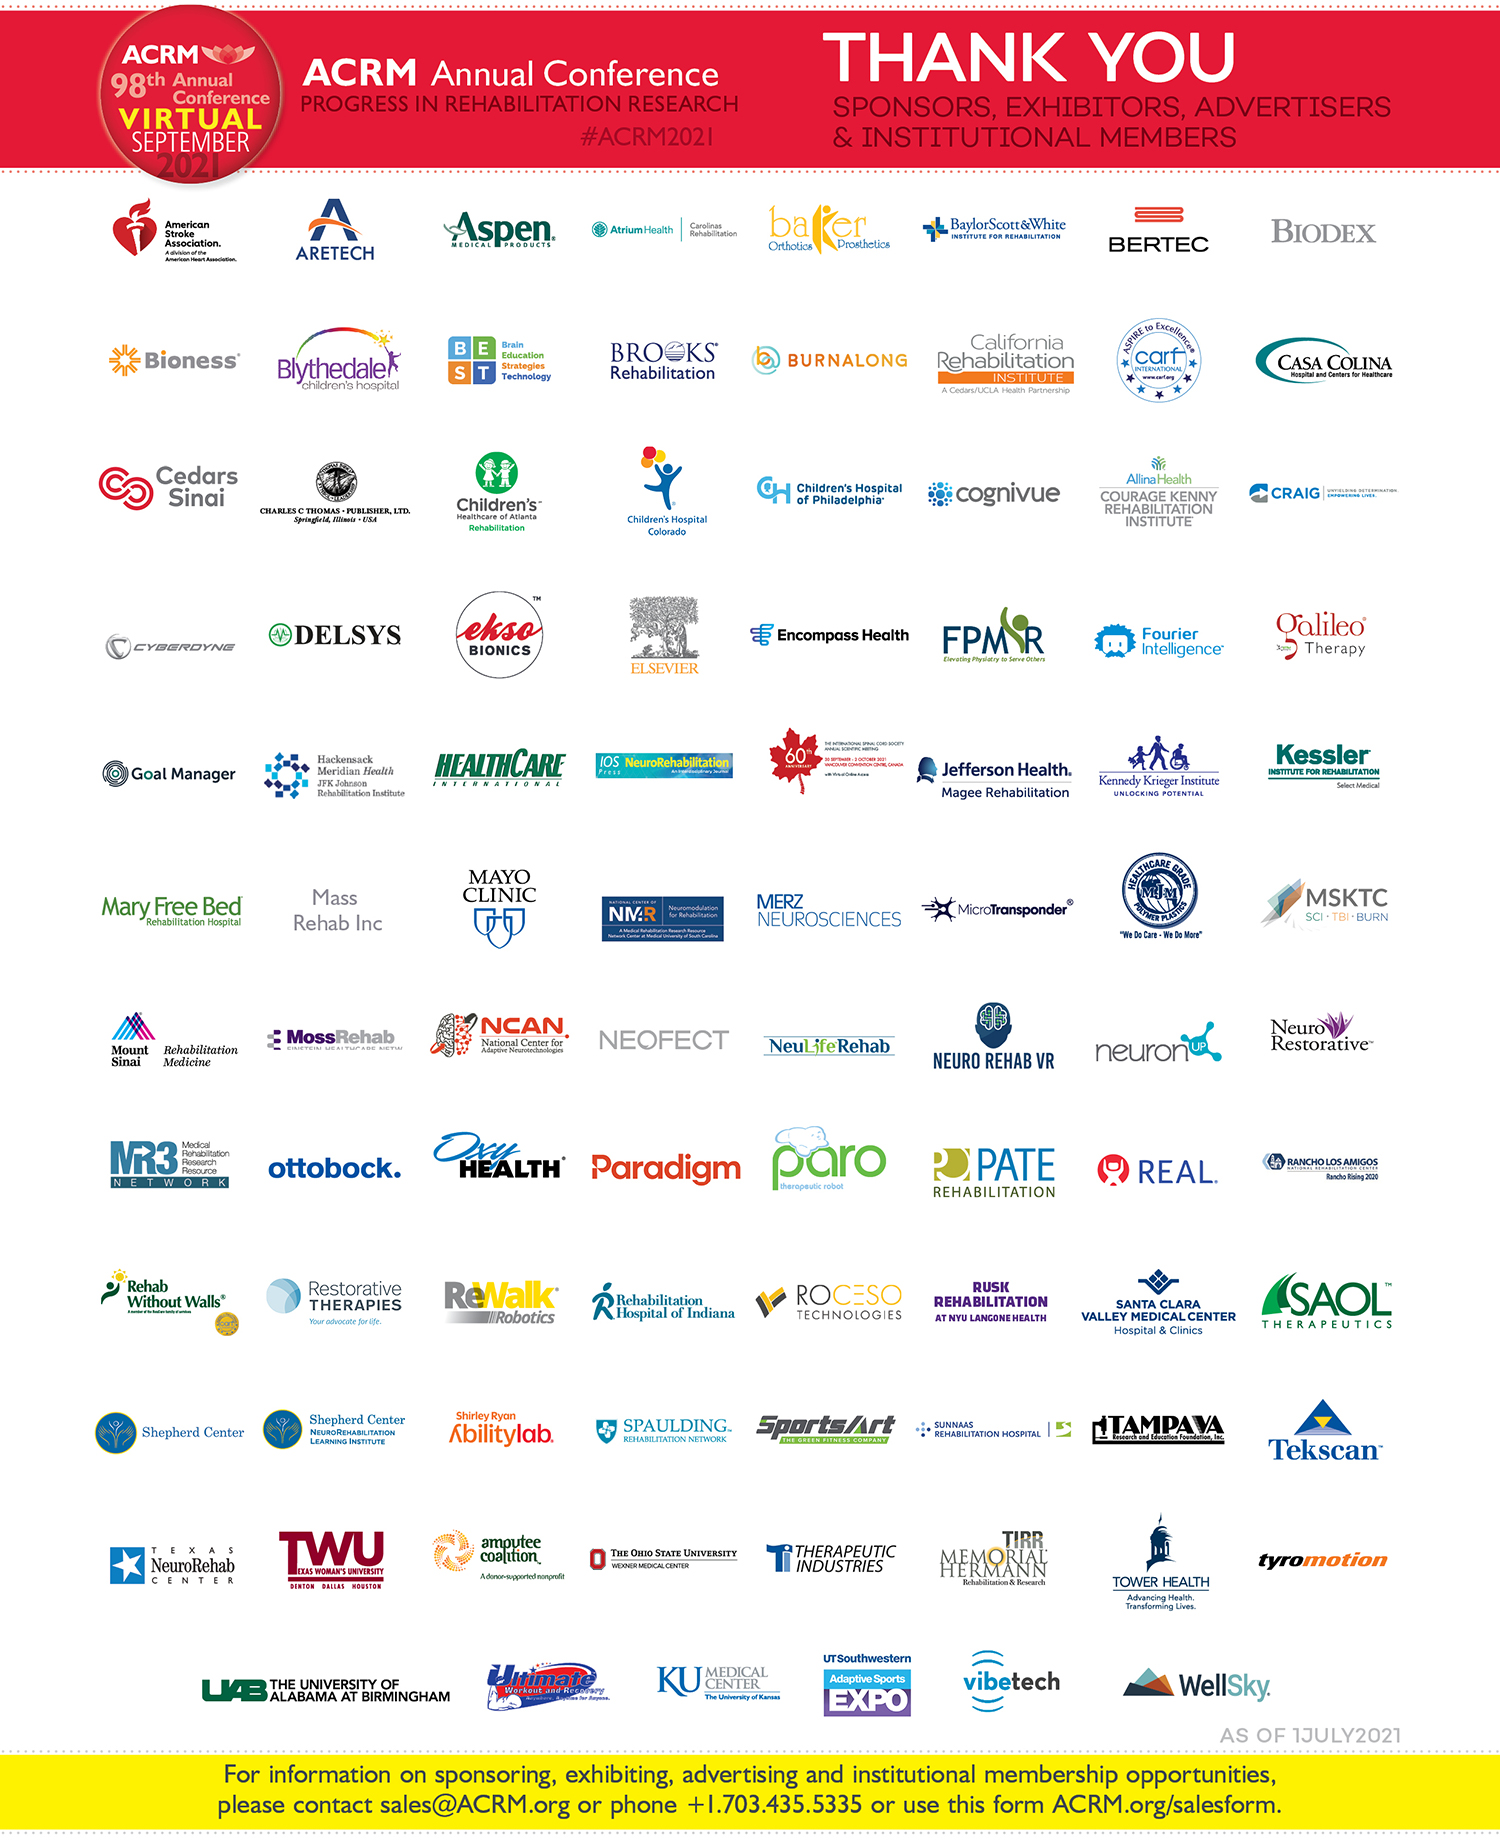 Footer image: Thank you to ACRM 2021 Supporters